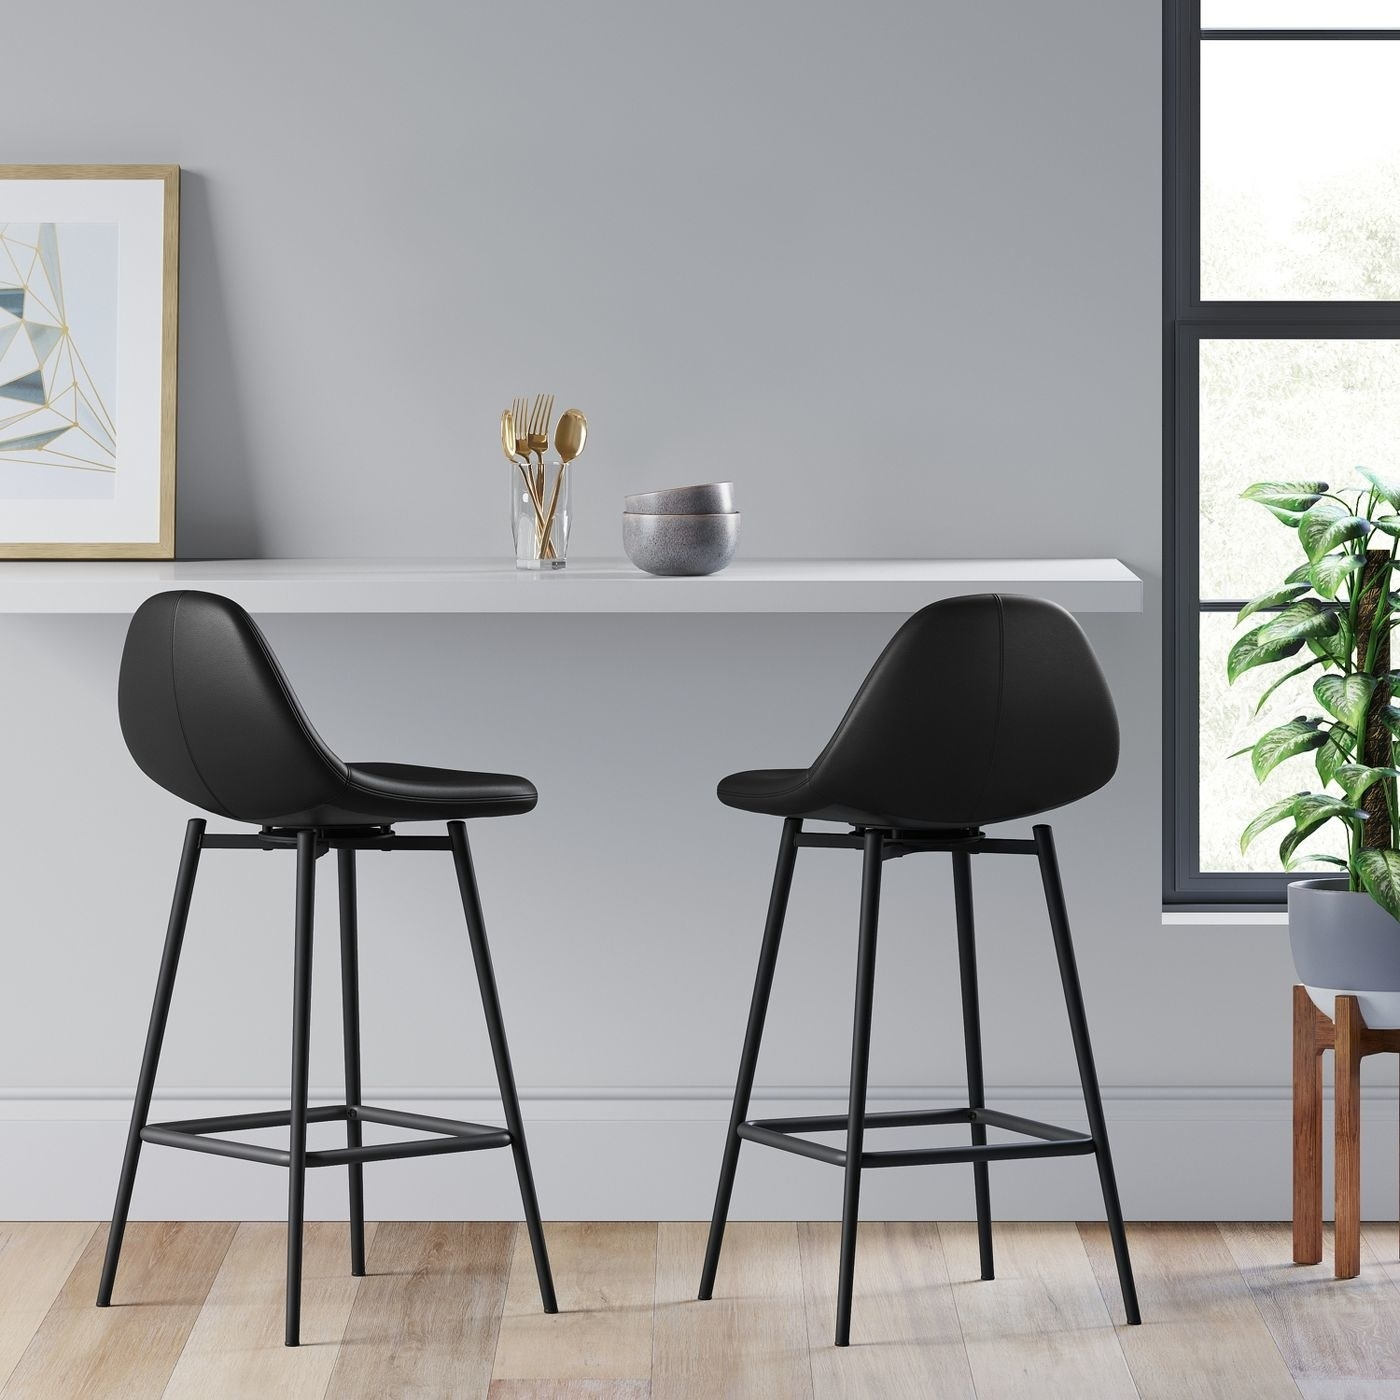 black faux leather counterstools with black legs